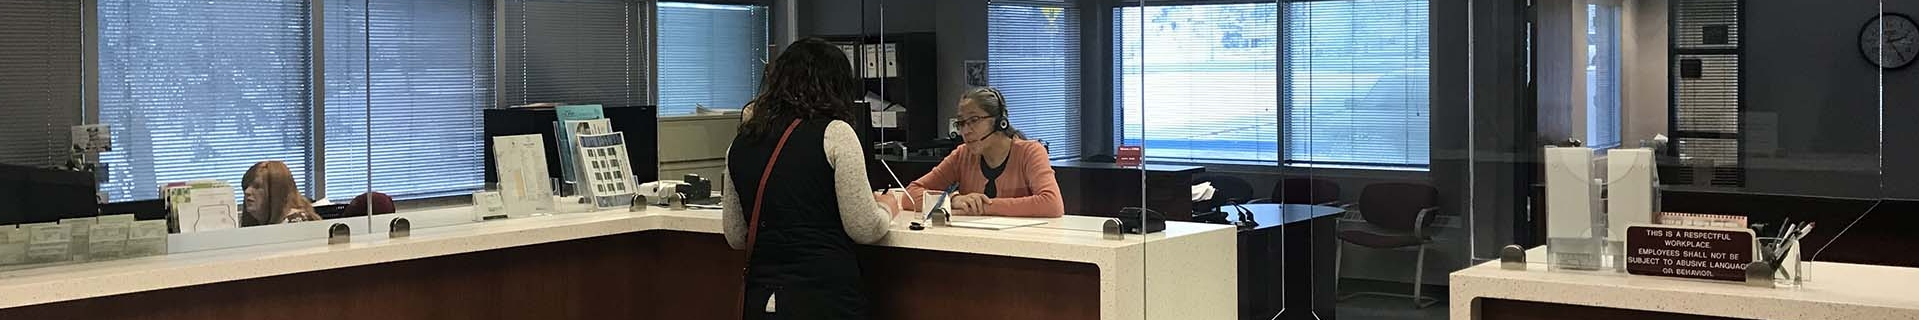 A Town of Olds staff member speaking with another woman in the Town Hall municipal building